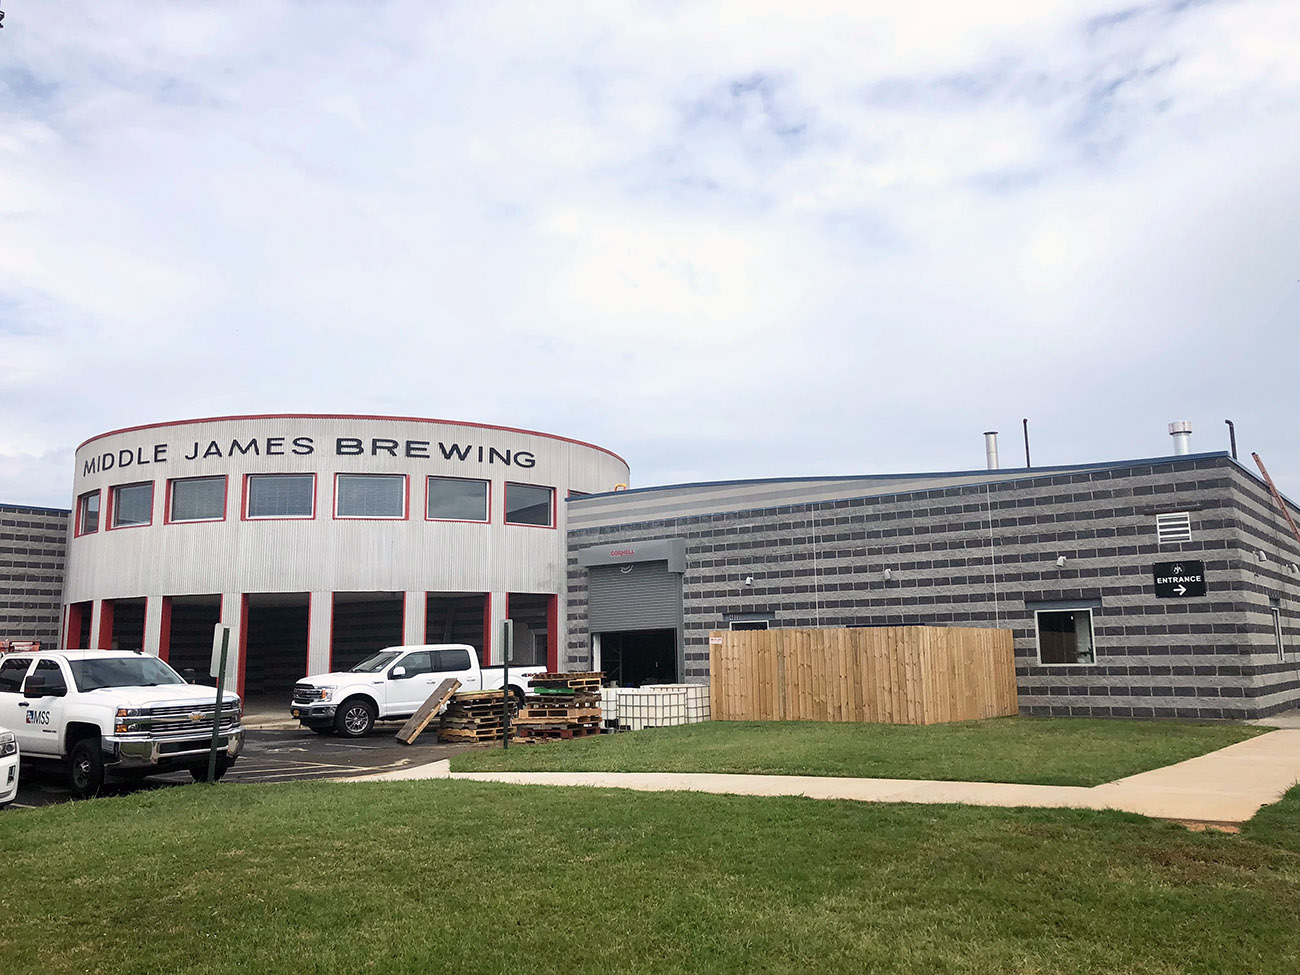 Go inside: Middle James Brewing now open in building that used to be a golf clubhouse